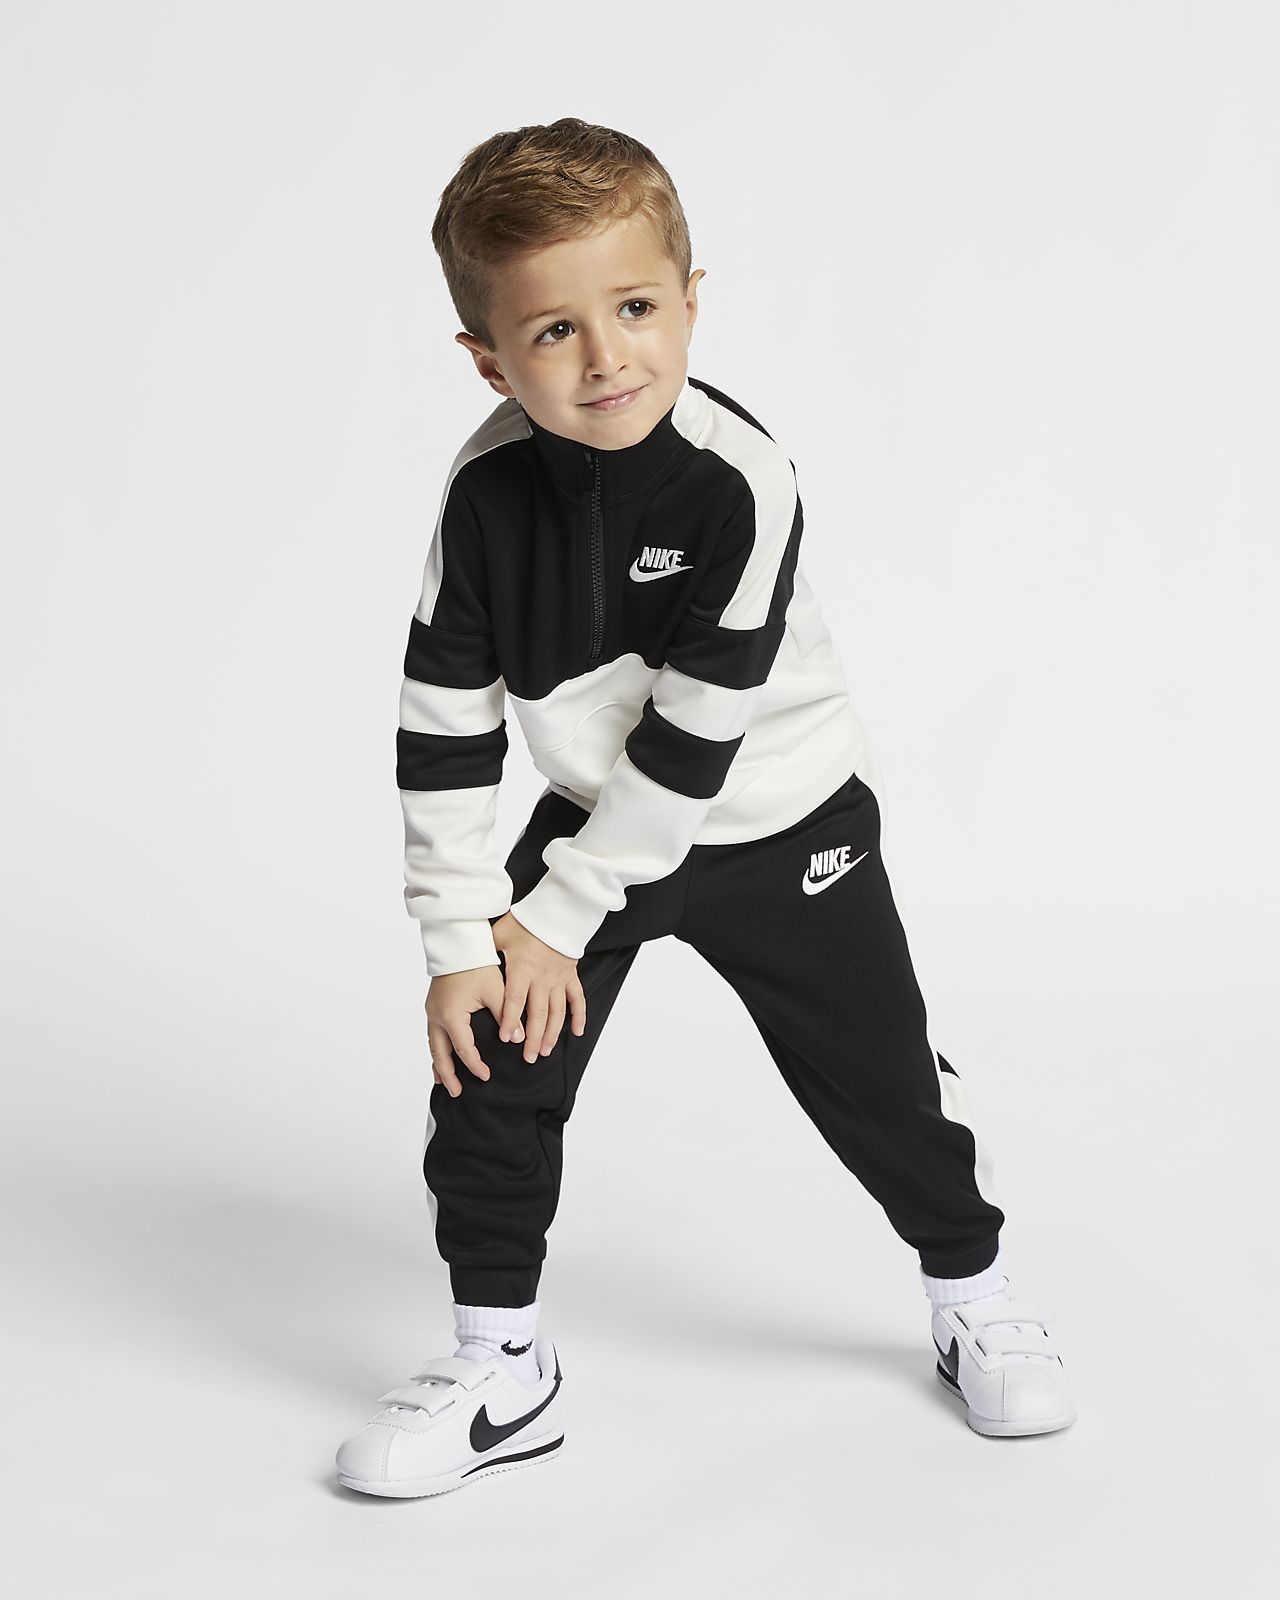 Nike Sportswear Toddler 2 Piece Set Nike Kids Outfit Fashion Baby Girl Outfits Kids Outfits